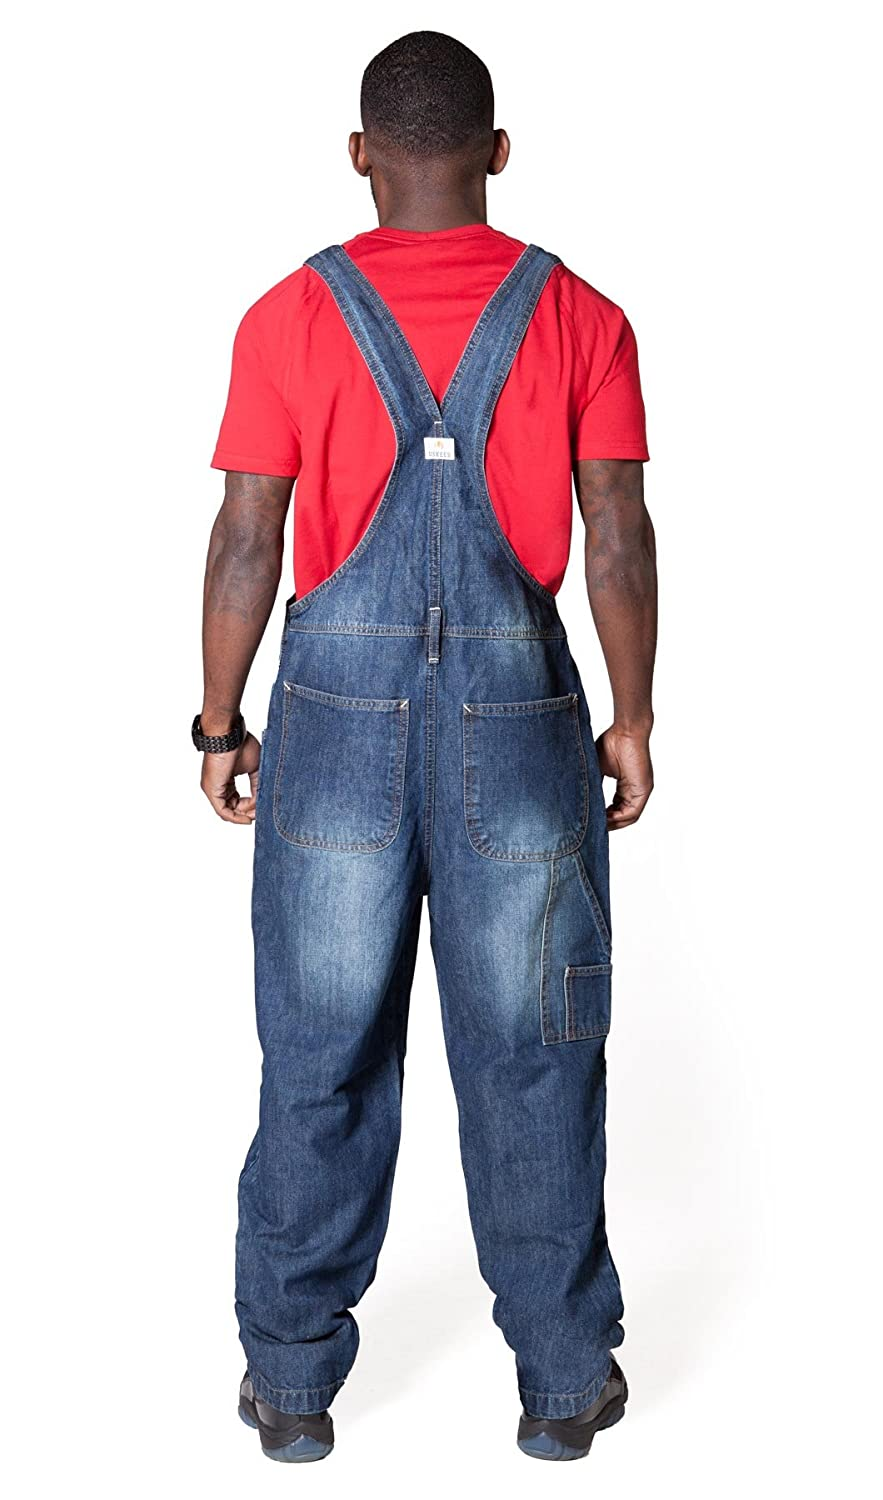 87ac316199f9 Uskees Stevie Loose Fit Mens Dungarees - Dark Wash Blue Denim Bib Overalls  STEVIEDW-S-W32  Amazon.co.uk  Clothing